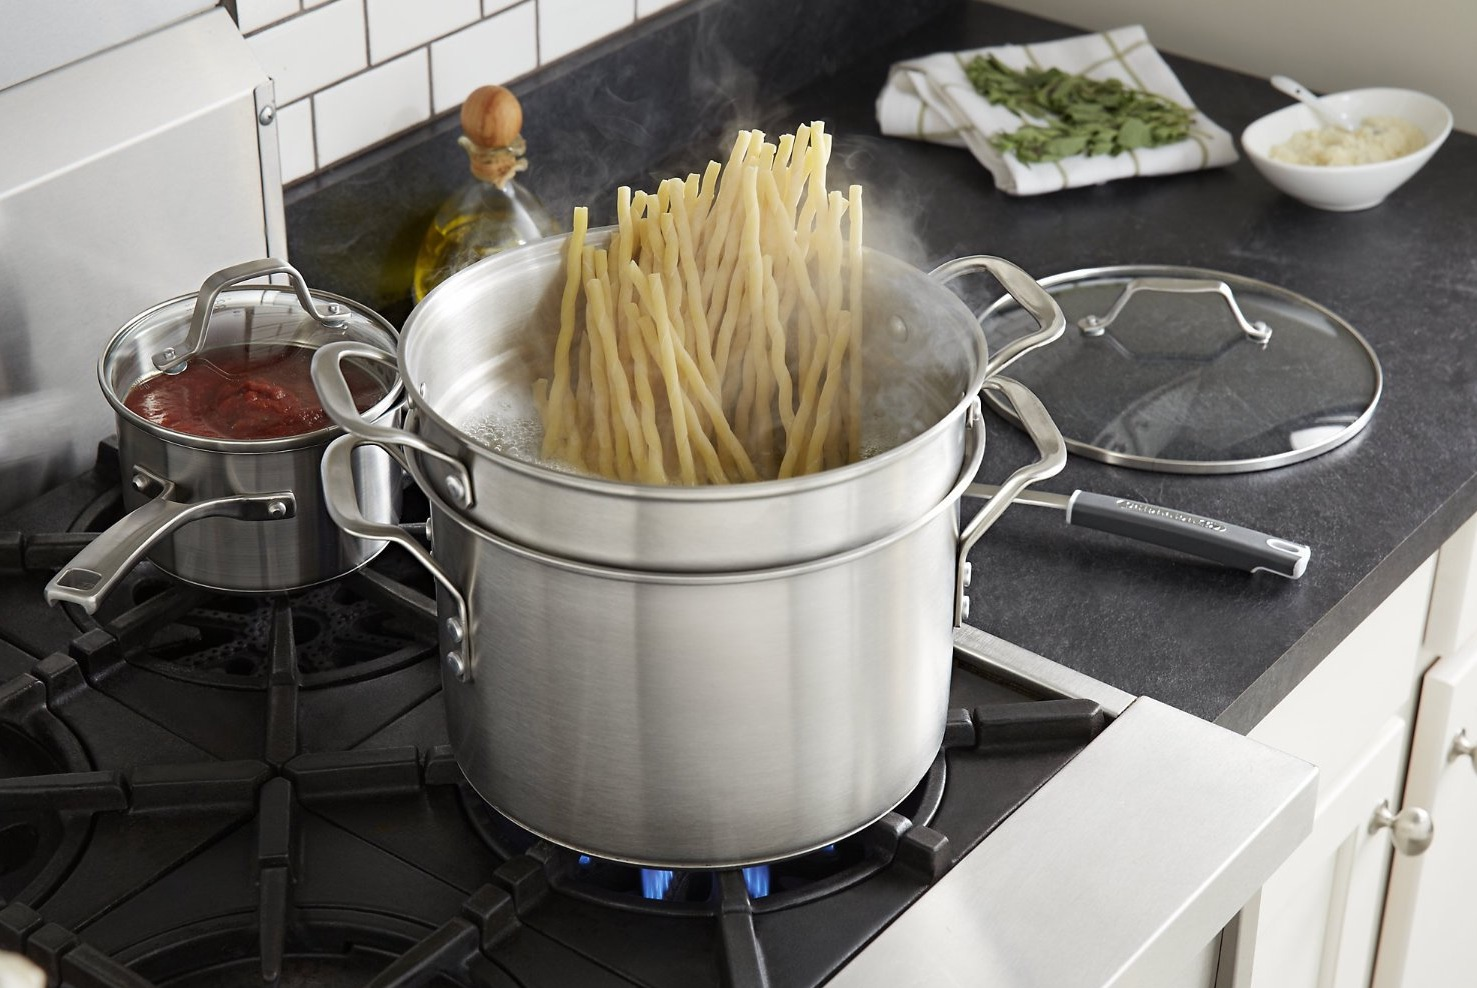 Calphalon Stainless Steel Stock Pot